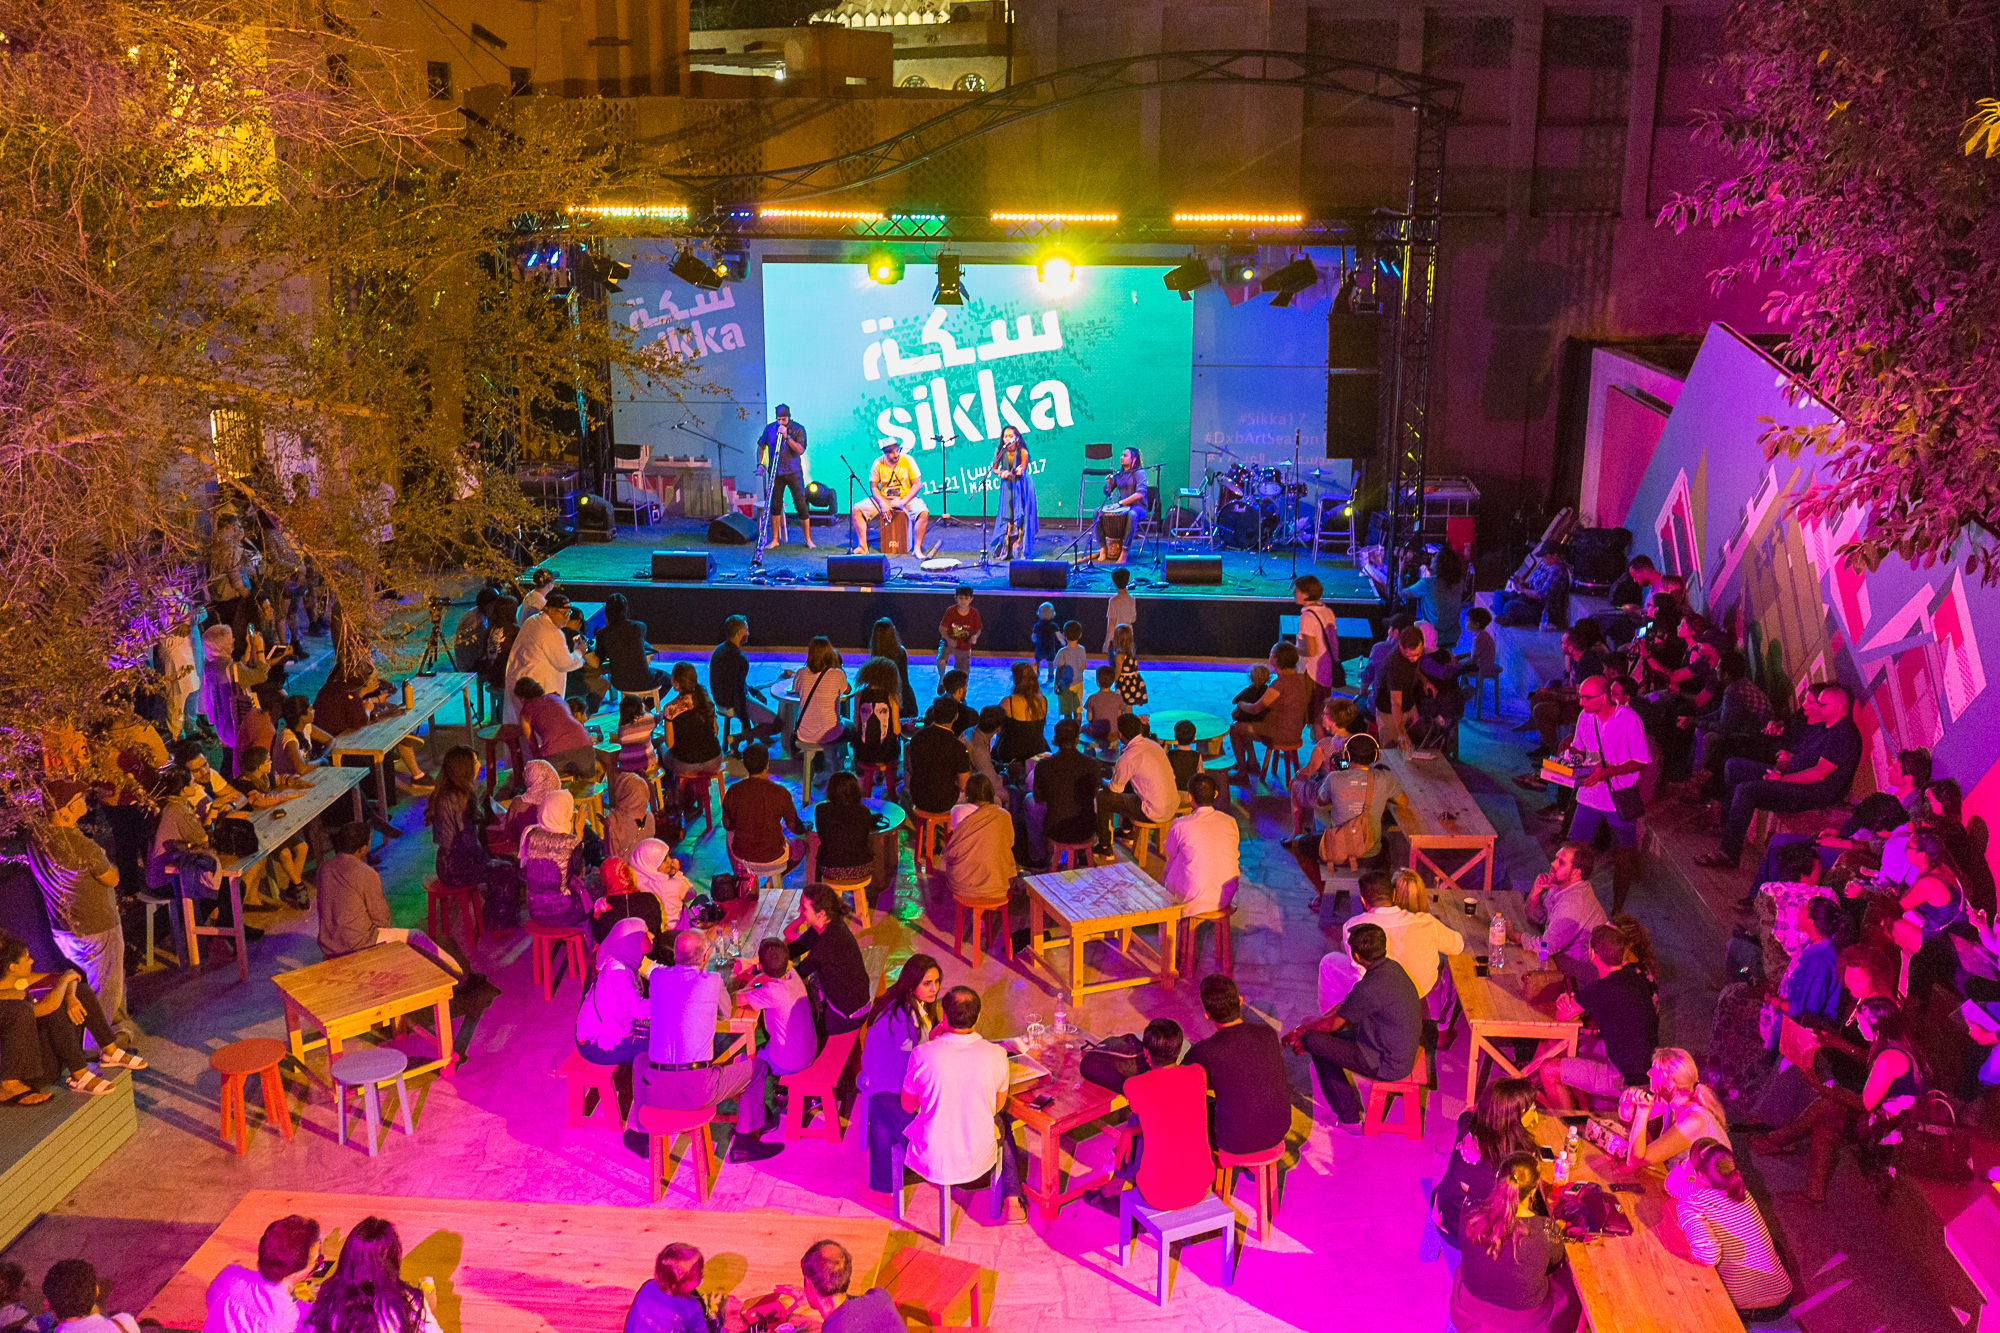 Sikka 2017 - Crowd shots - 087